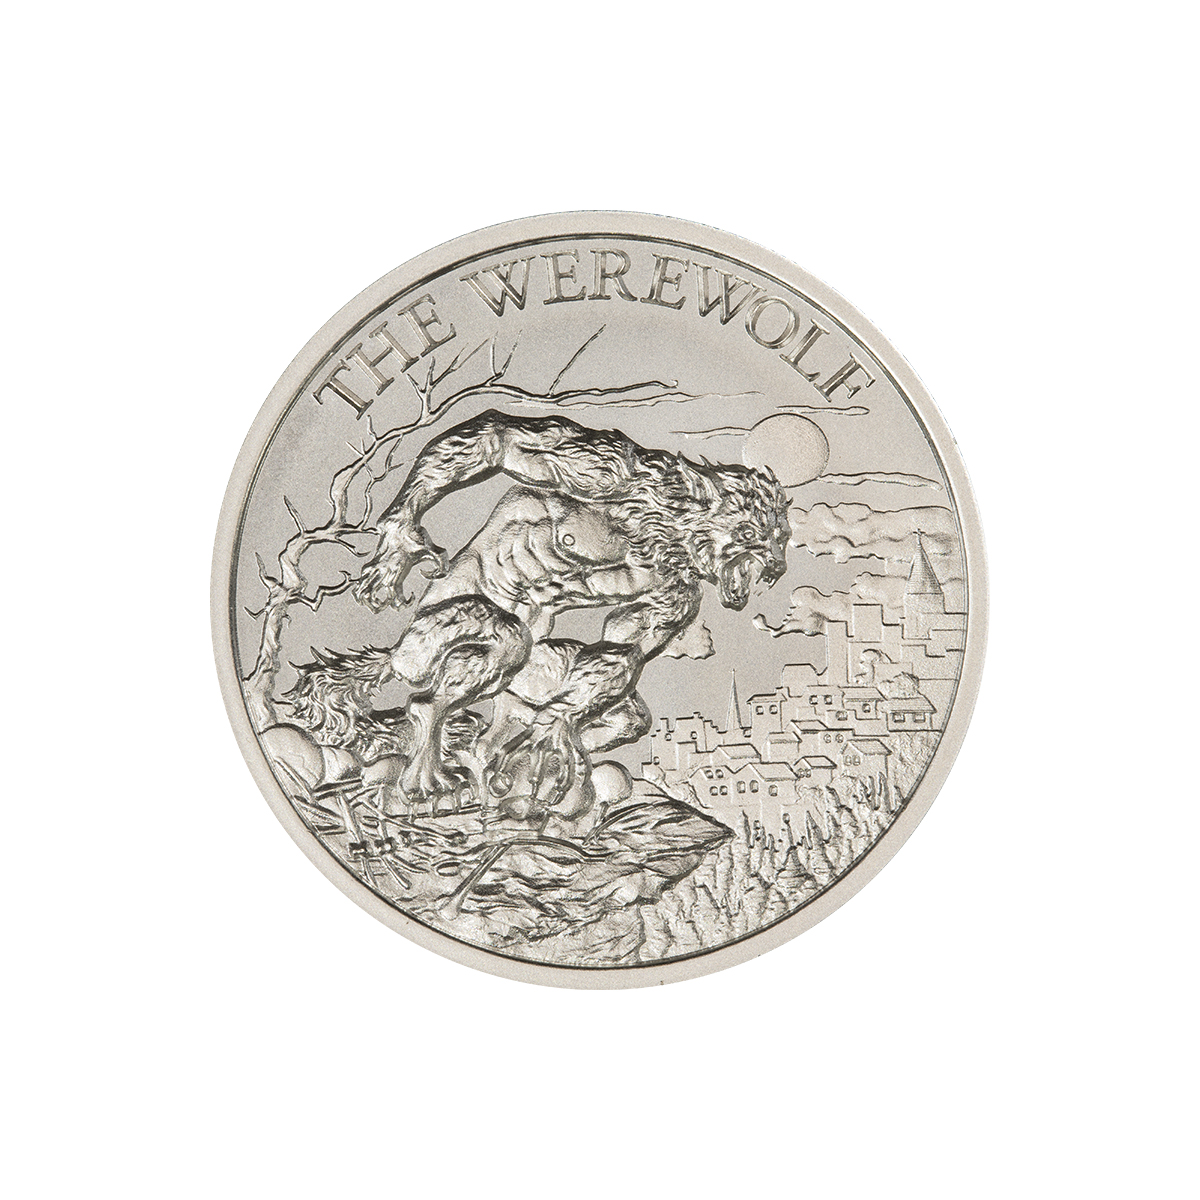 THE WEREWOLF – 1 TROY OUNCE – 39MM